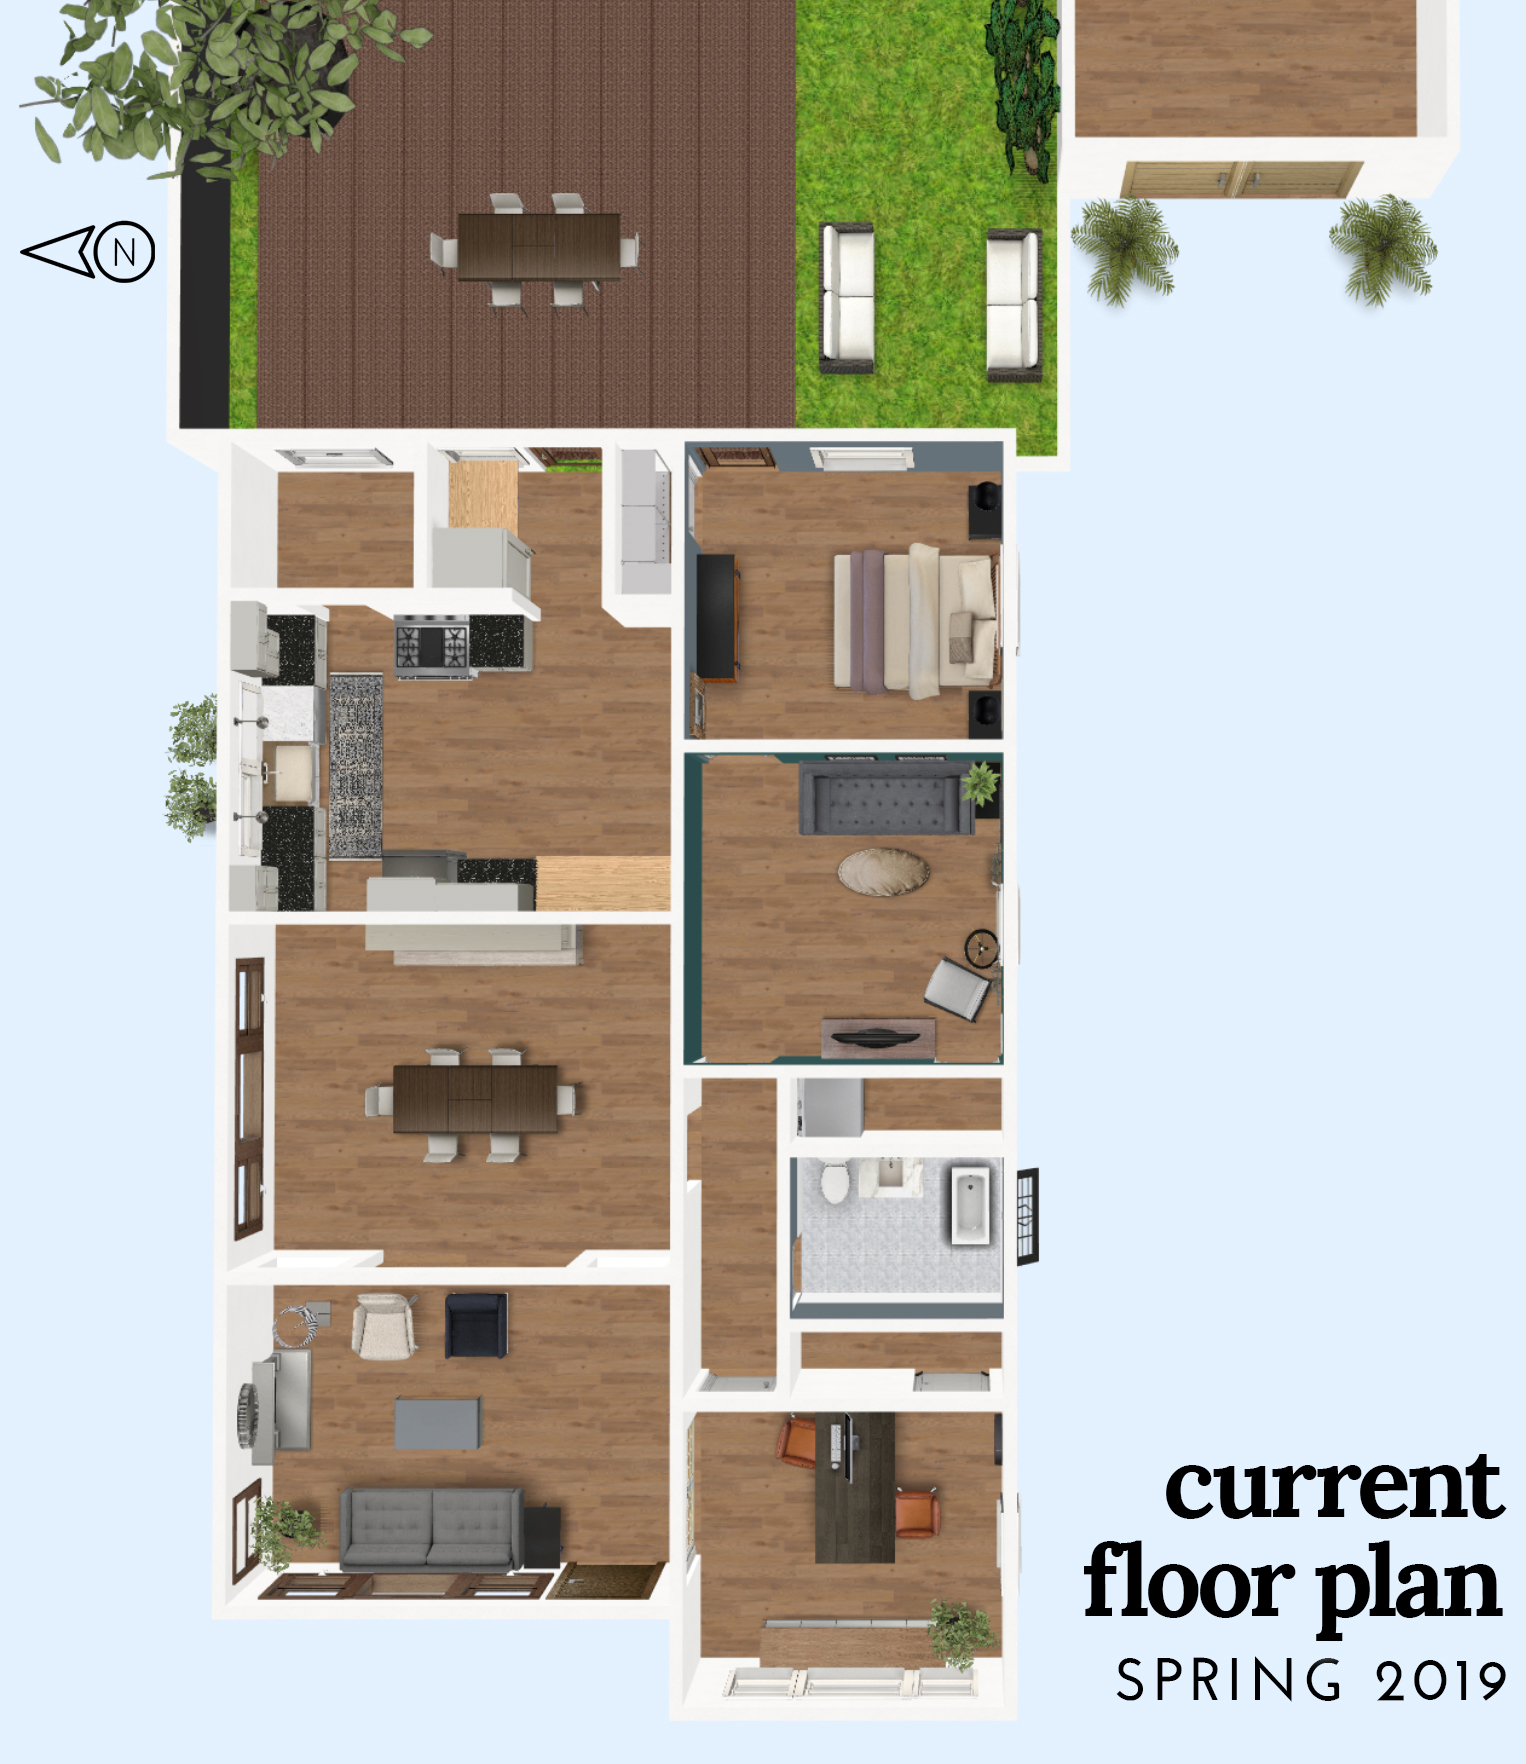 Current floorplan spring 2019 The Gold Hive.jpg